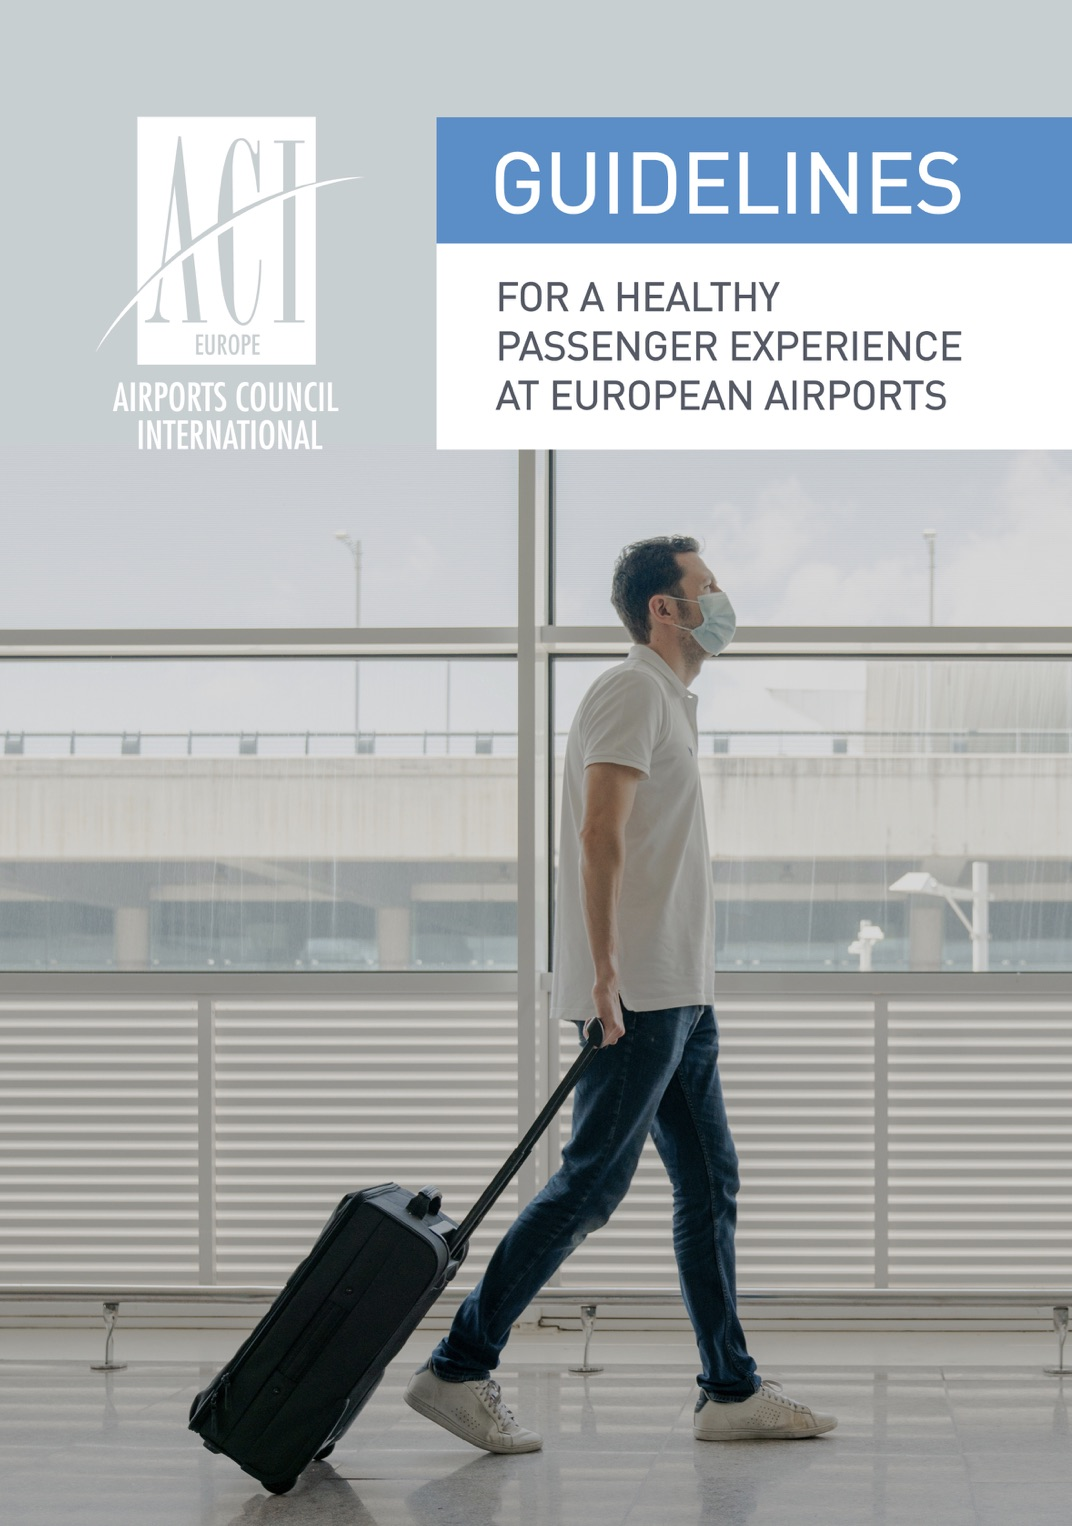 Guidelines for a healthy passenger experience at airports